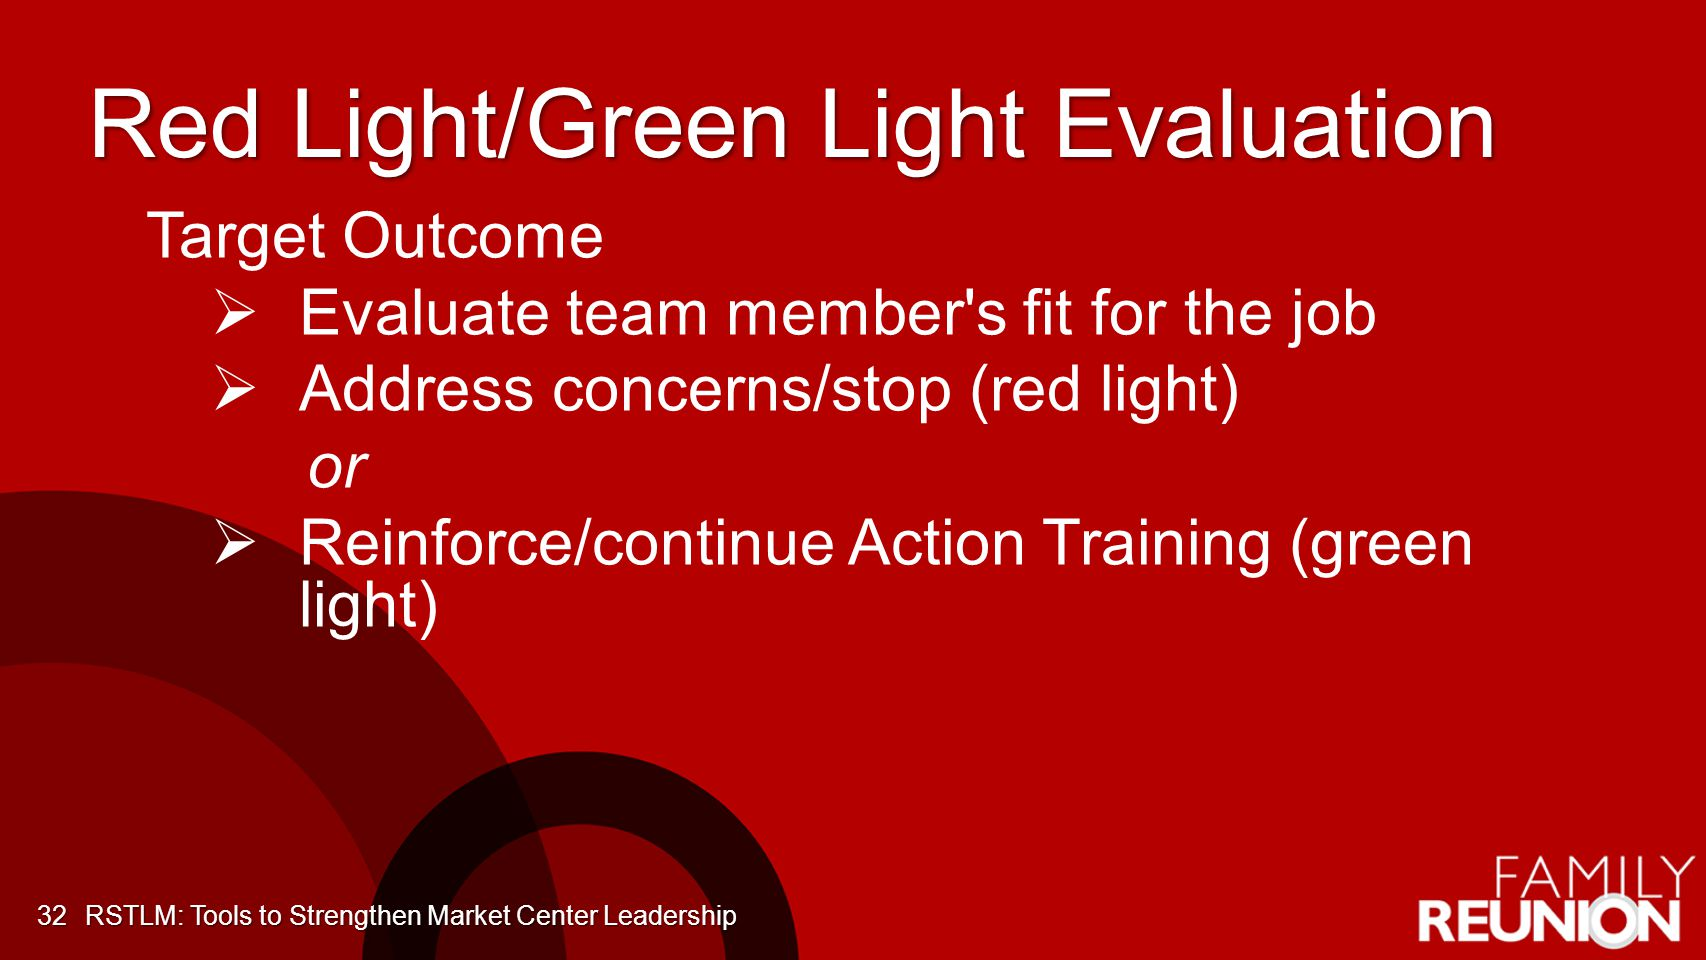 Red Light/Green Light Evaluation 32 Target Outcome Evaluate team member's fit for the job Address concerns/stop (red light) or Reinforce/continue Acti